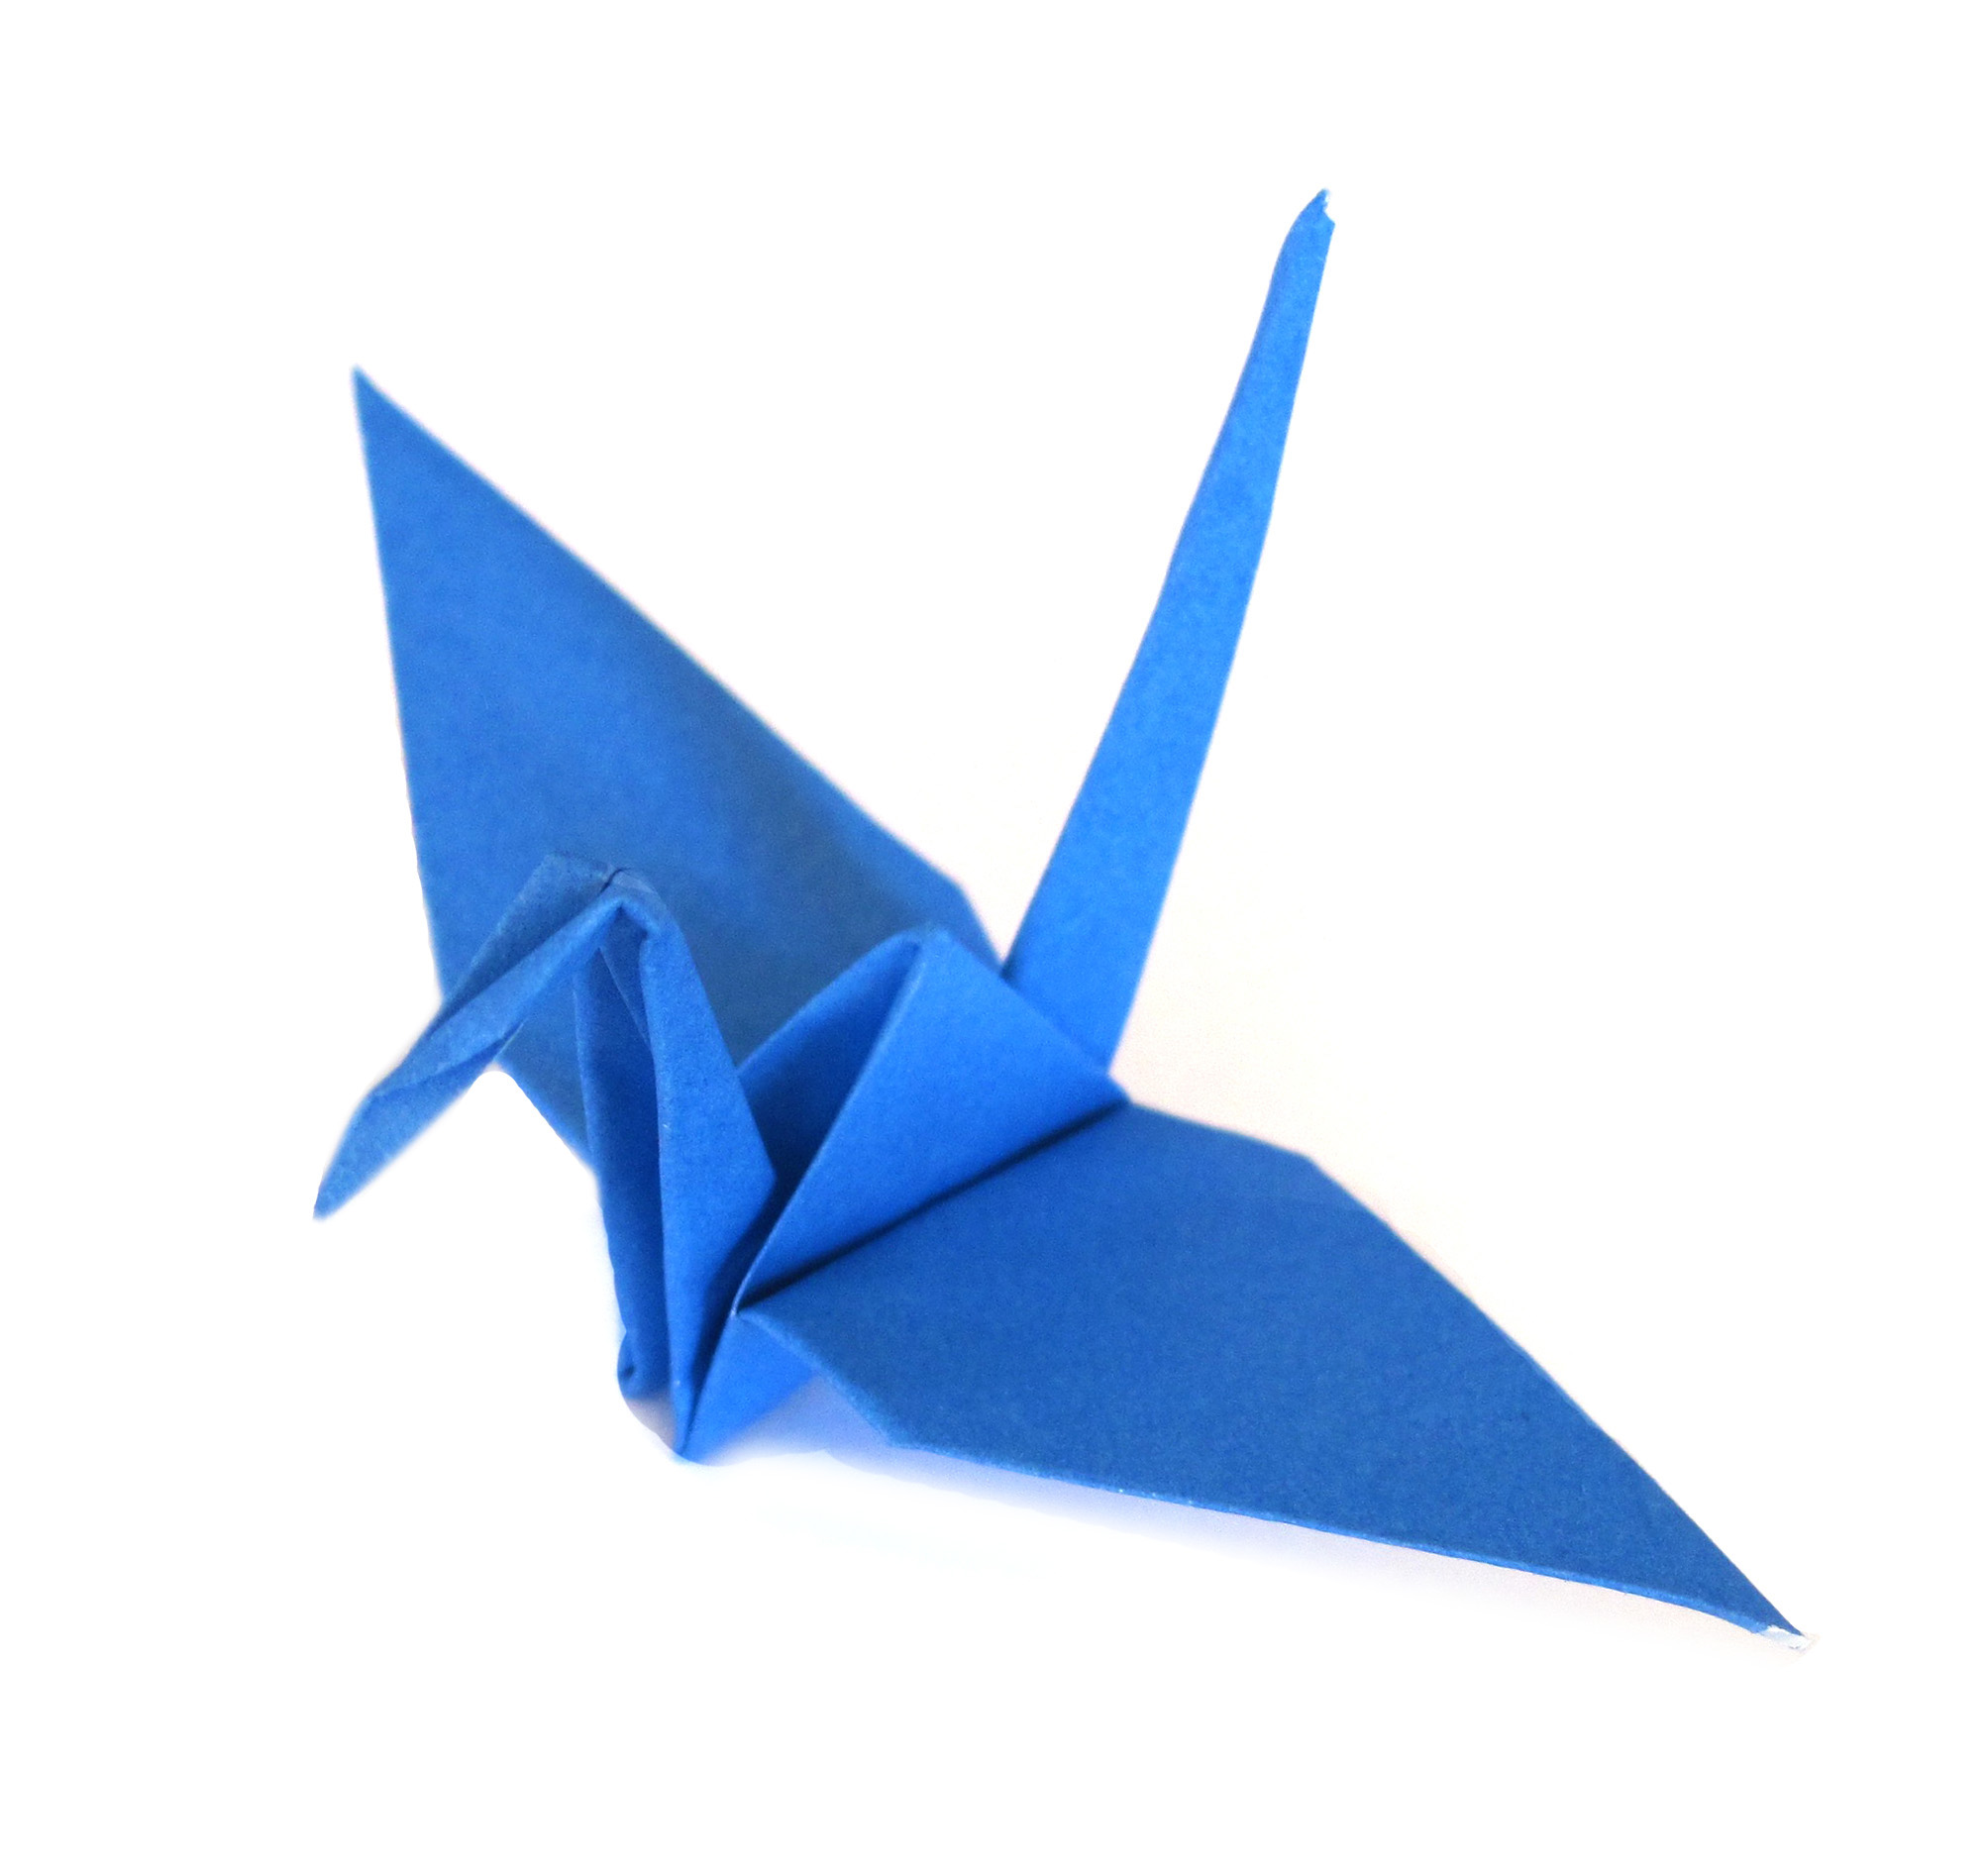 origami paper crane diagram dsl splitter wiring blue cranes  graceincrease custom art